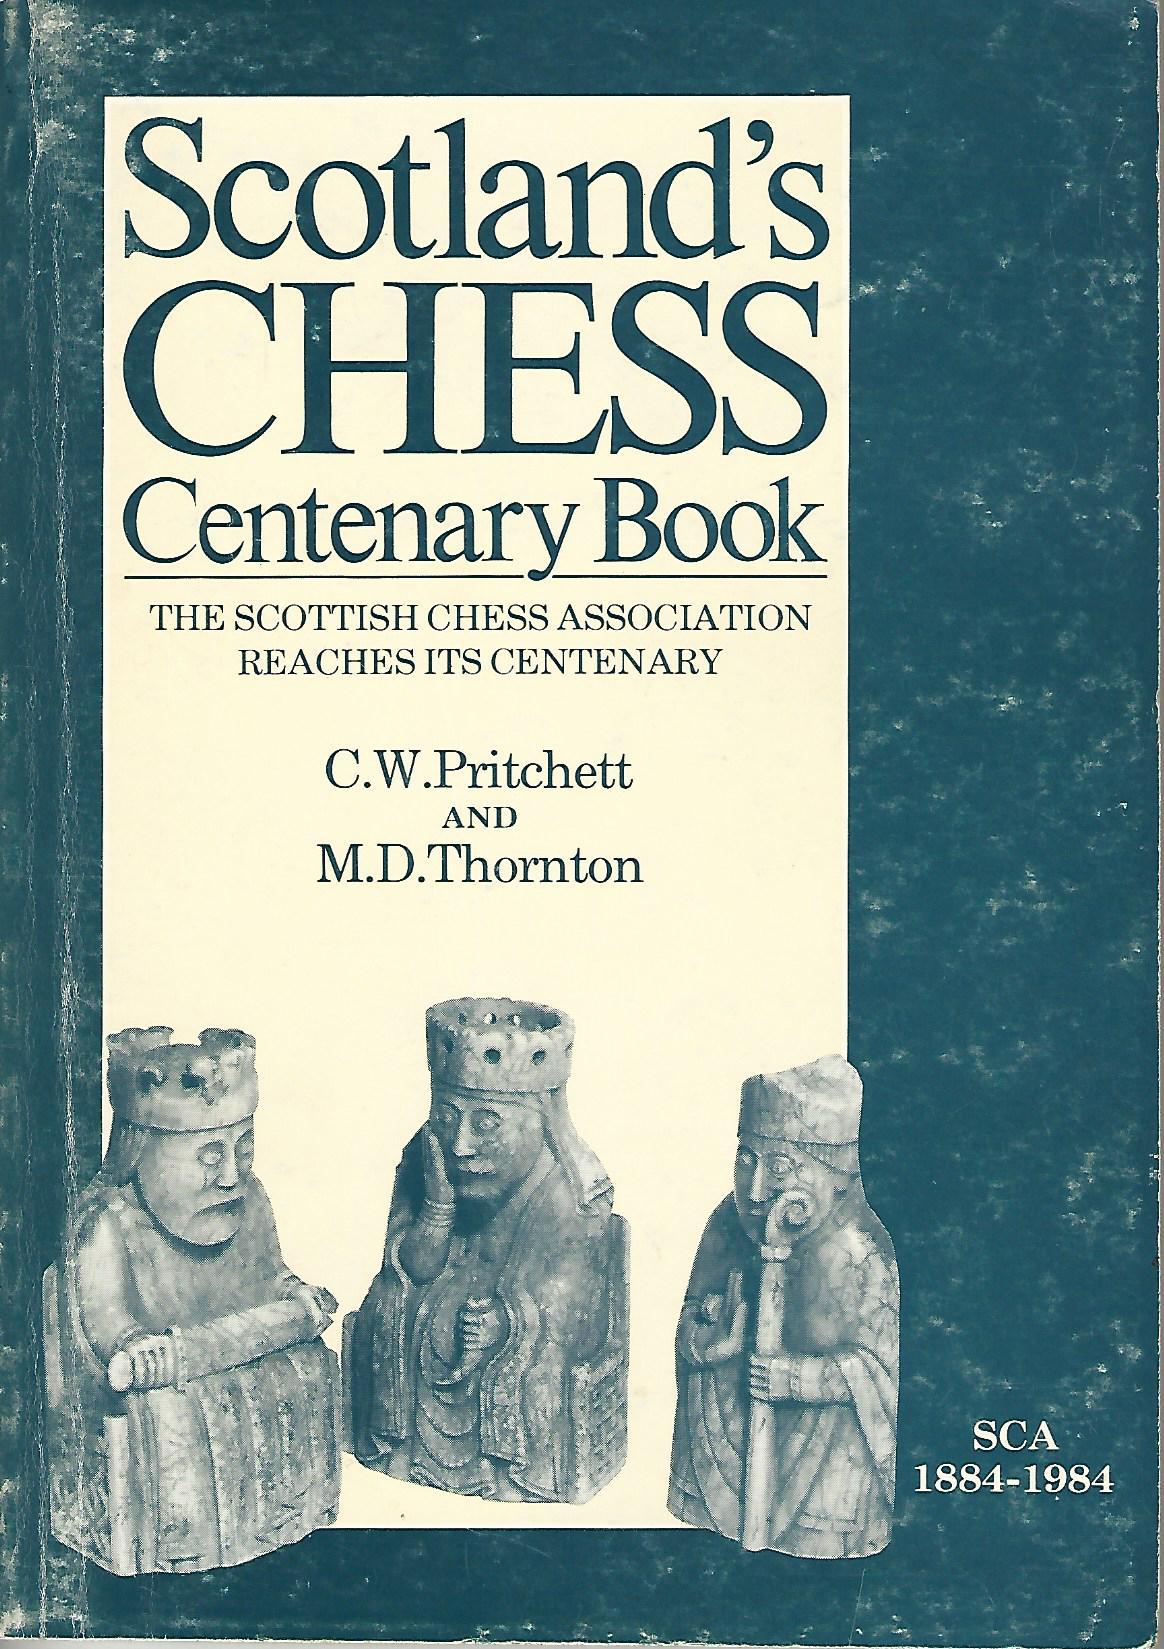 Image for Scotland's Chess Centenary Book.